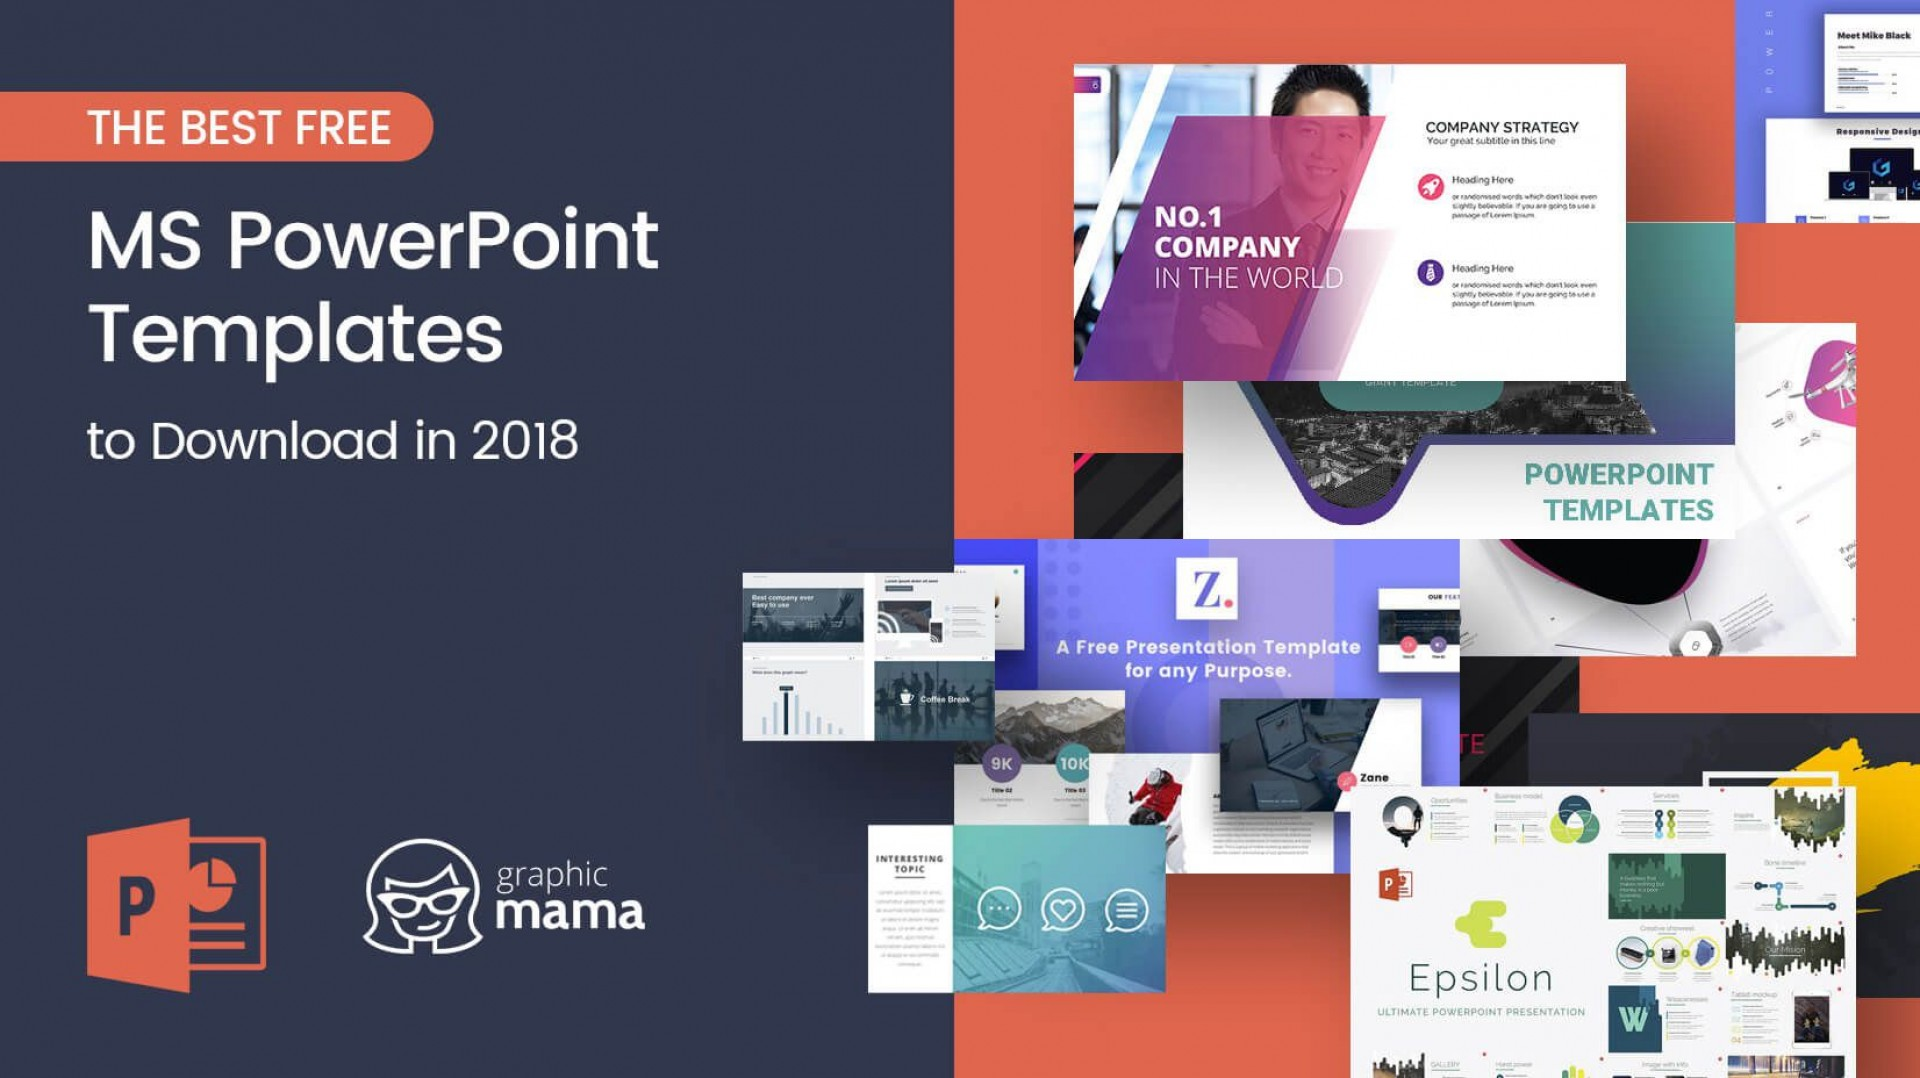 008 Awesome Free Downloadable Powerpoint Template Design  Templates Download Animated Background Theme1920